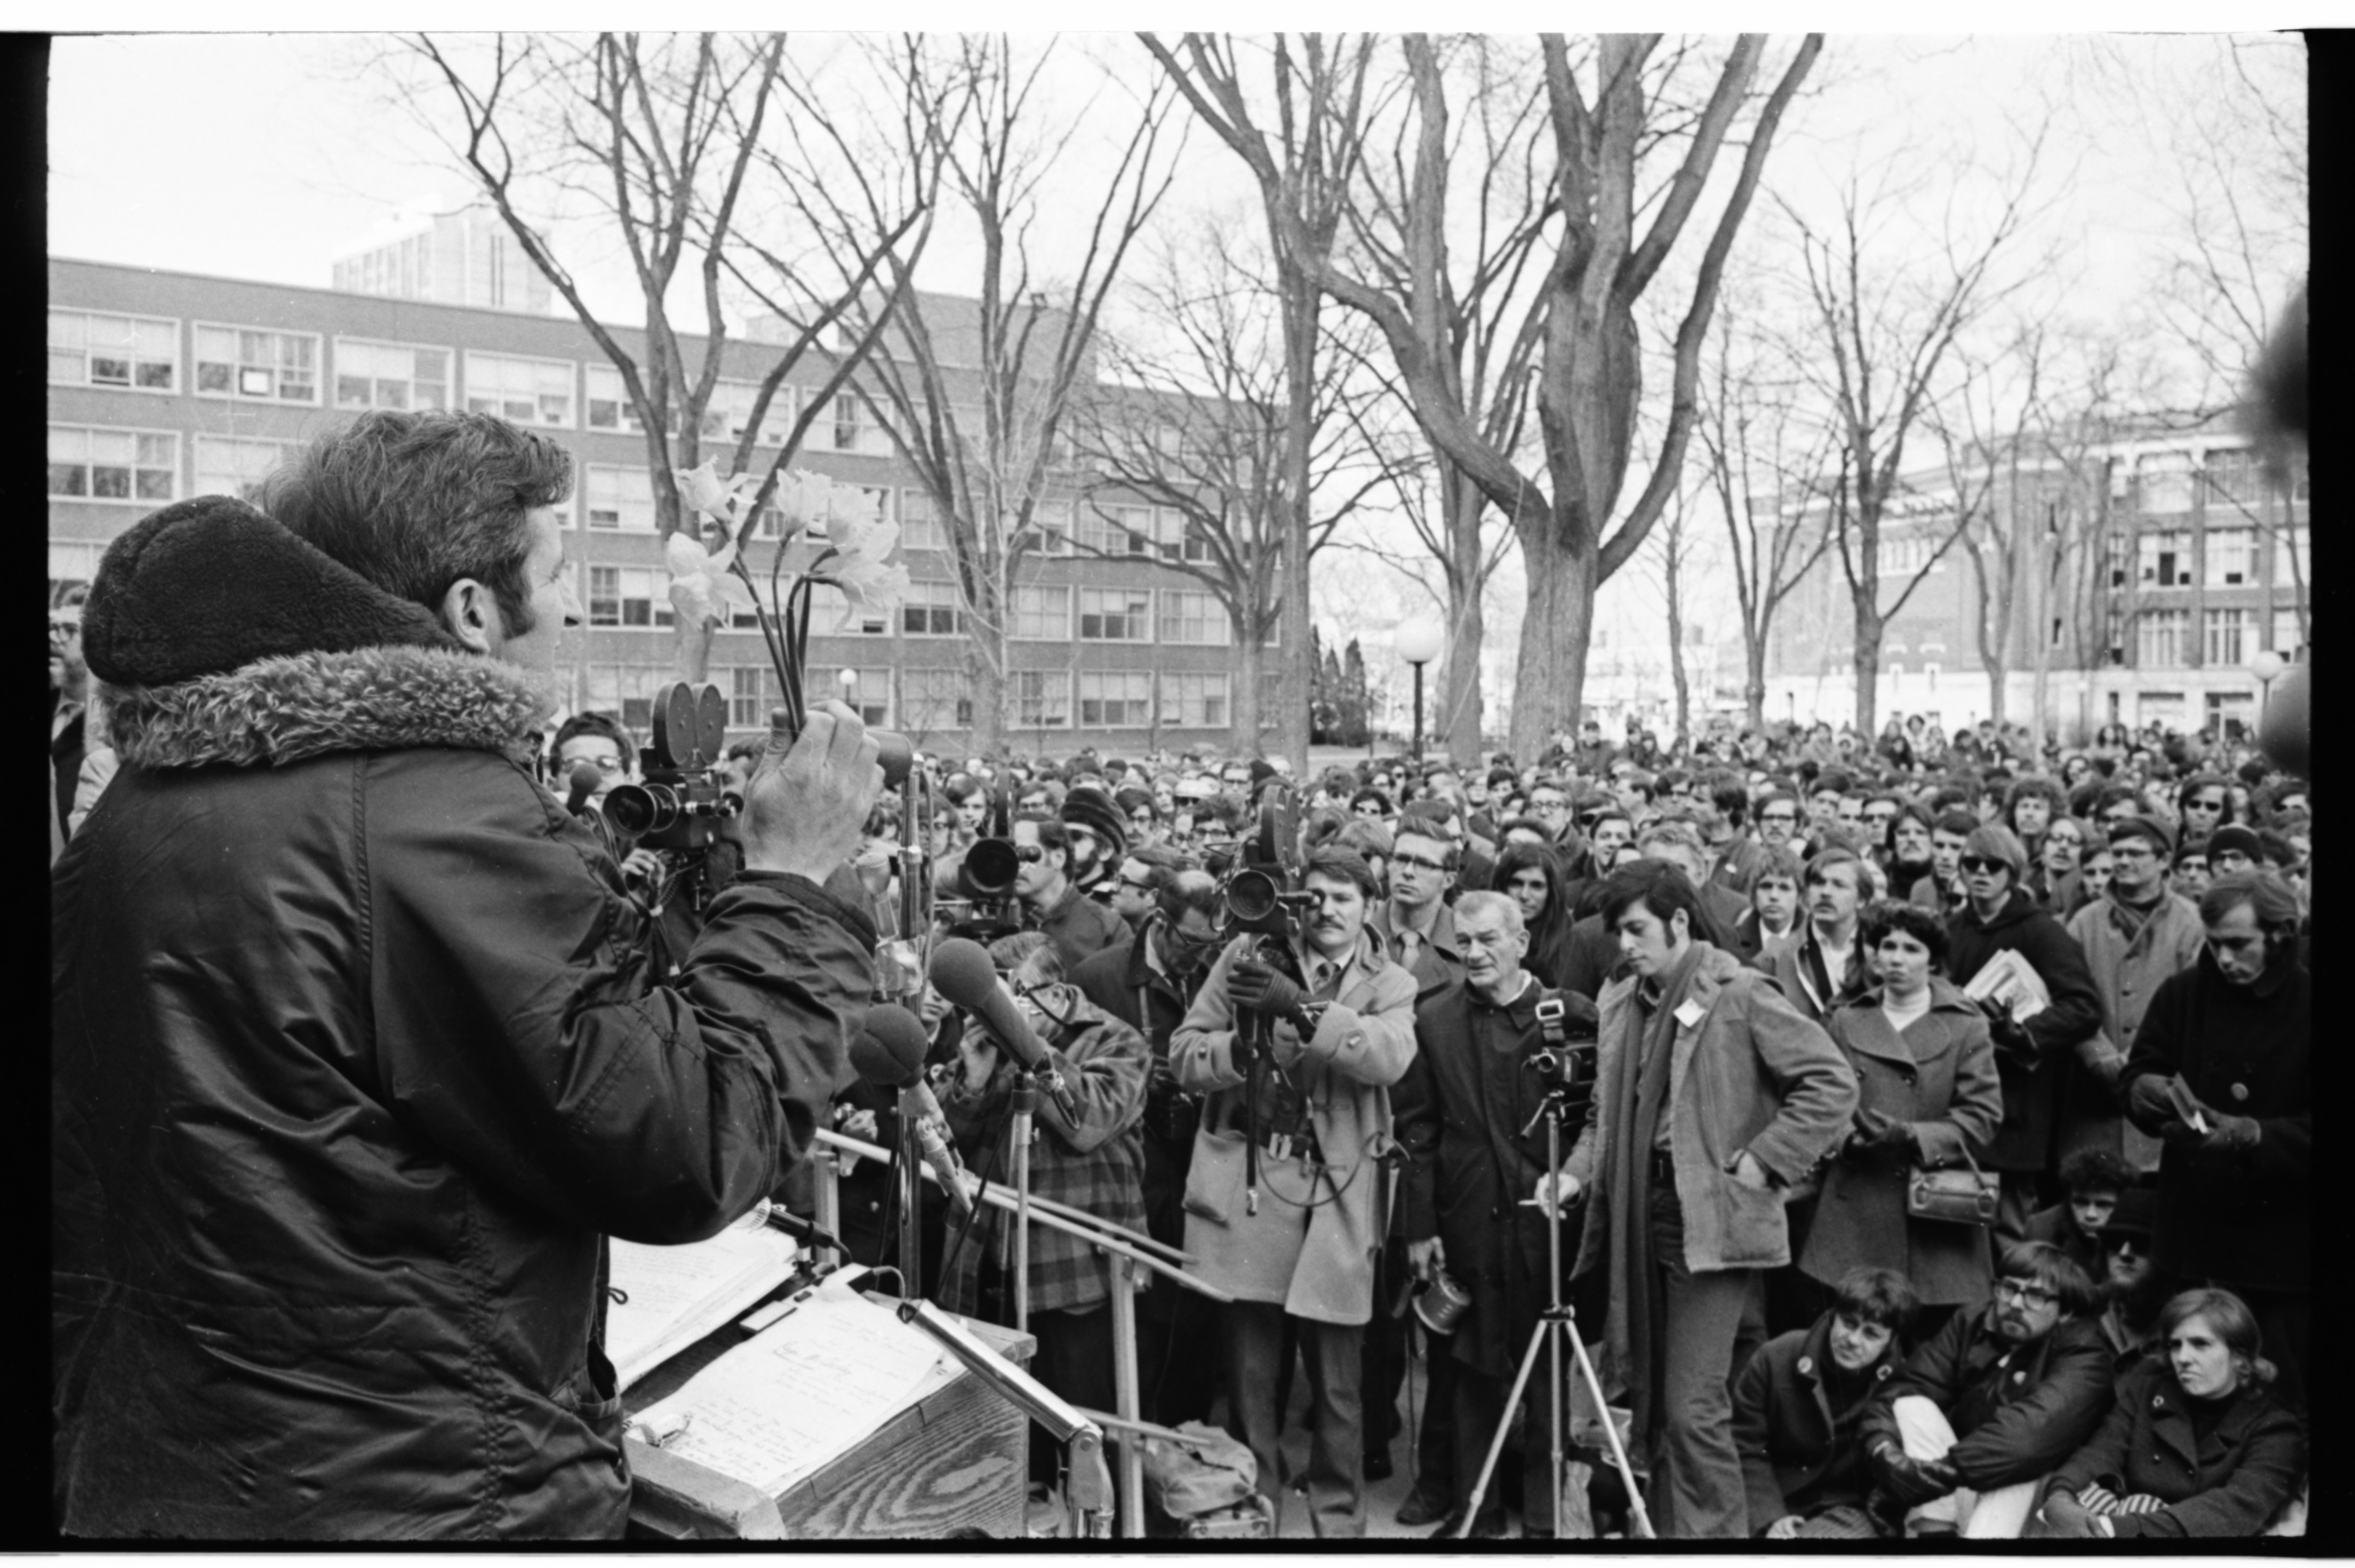 Ecologist Dr. Hugh Iltis Waves Flowers at ENACT Eco-Rally on University of Michigan Diag, March 1970 image